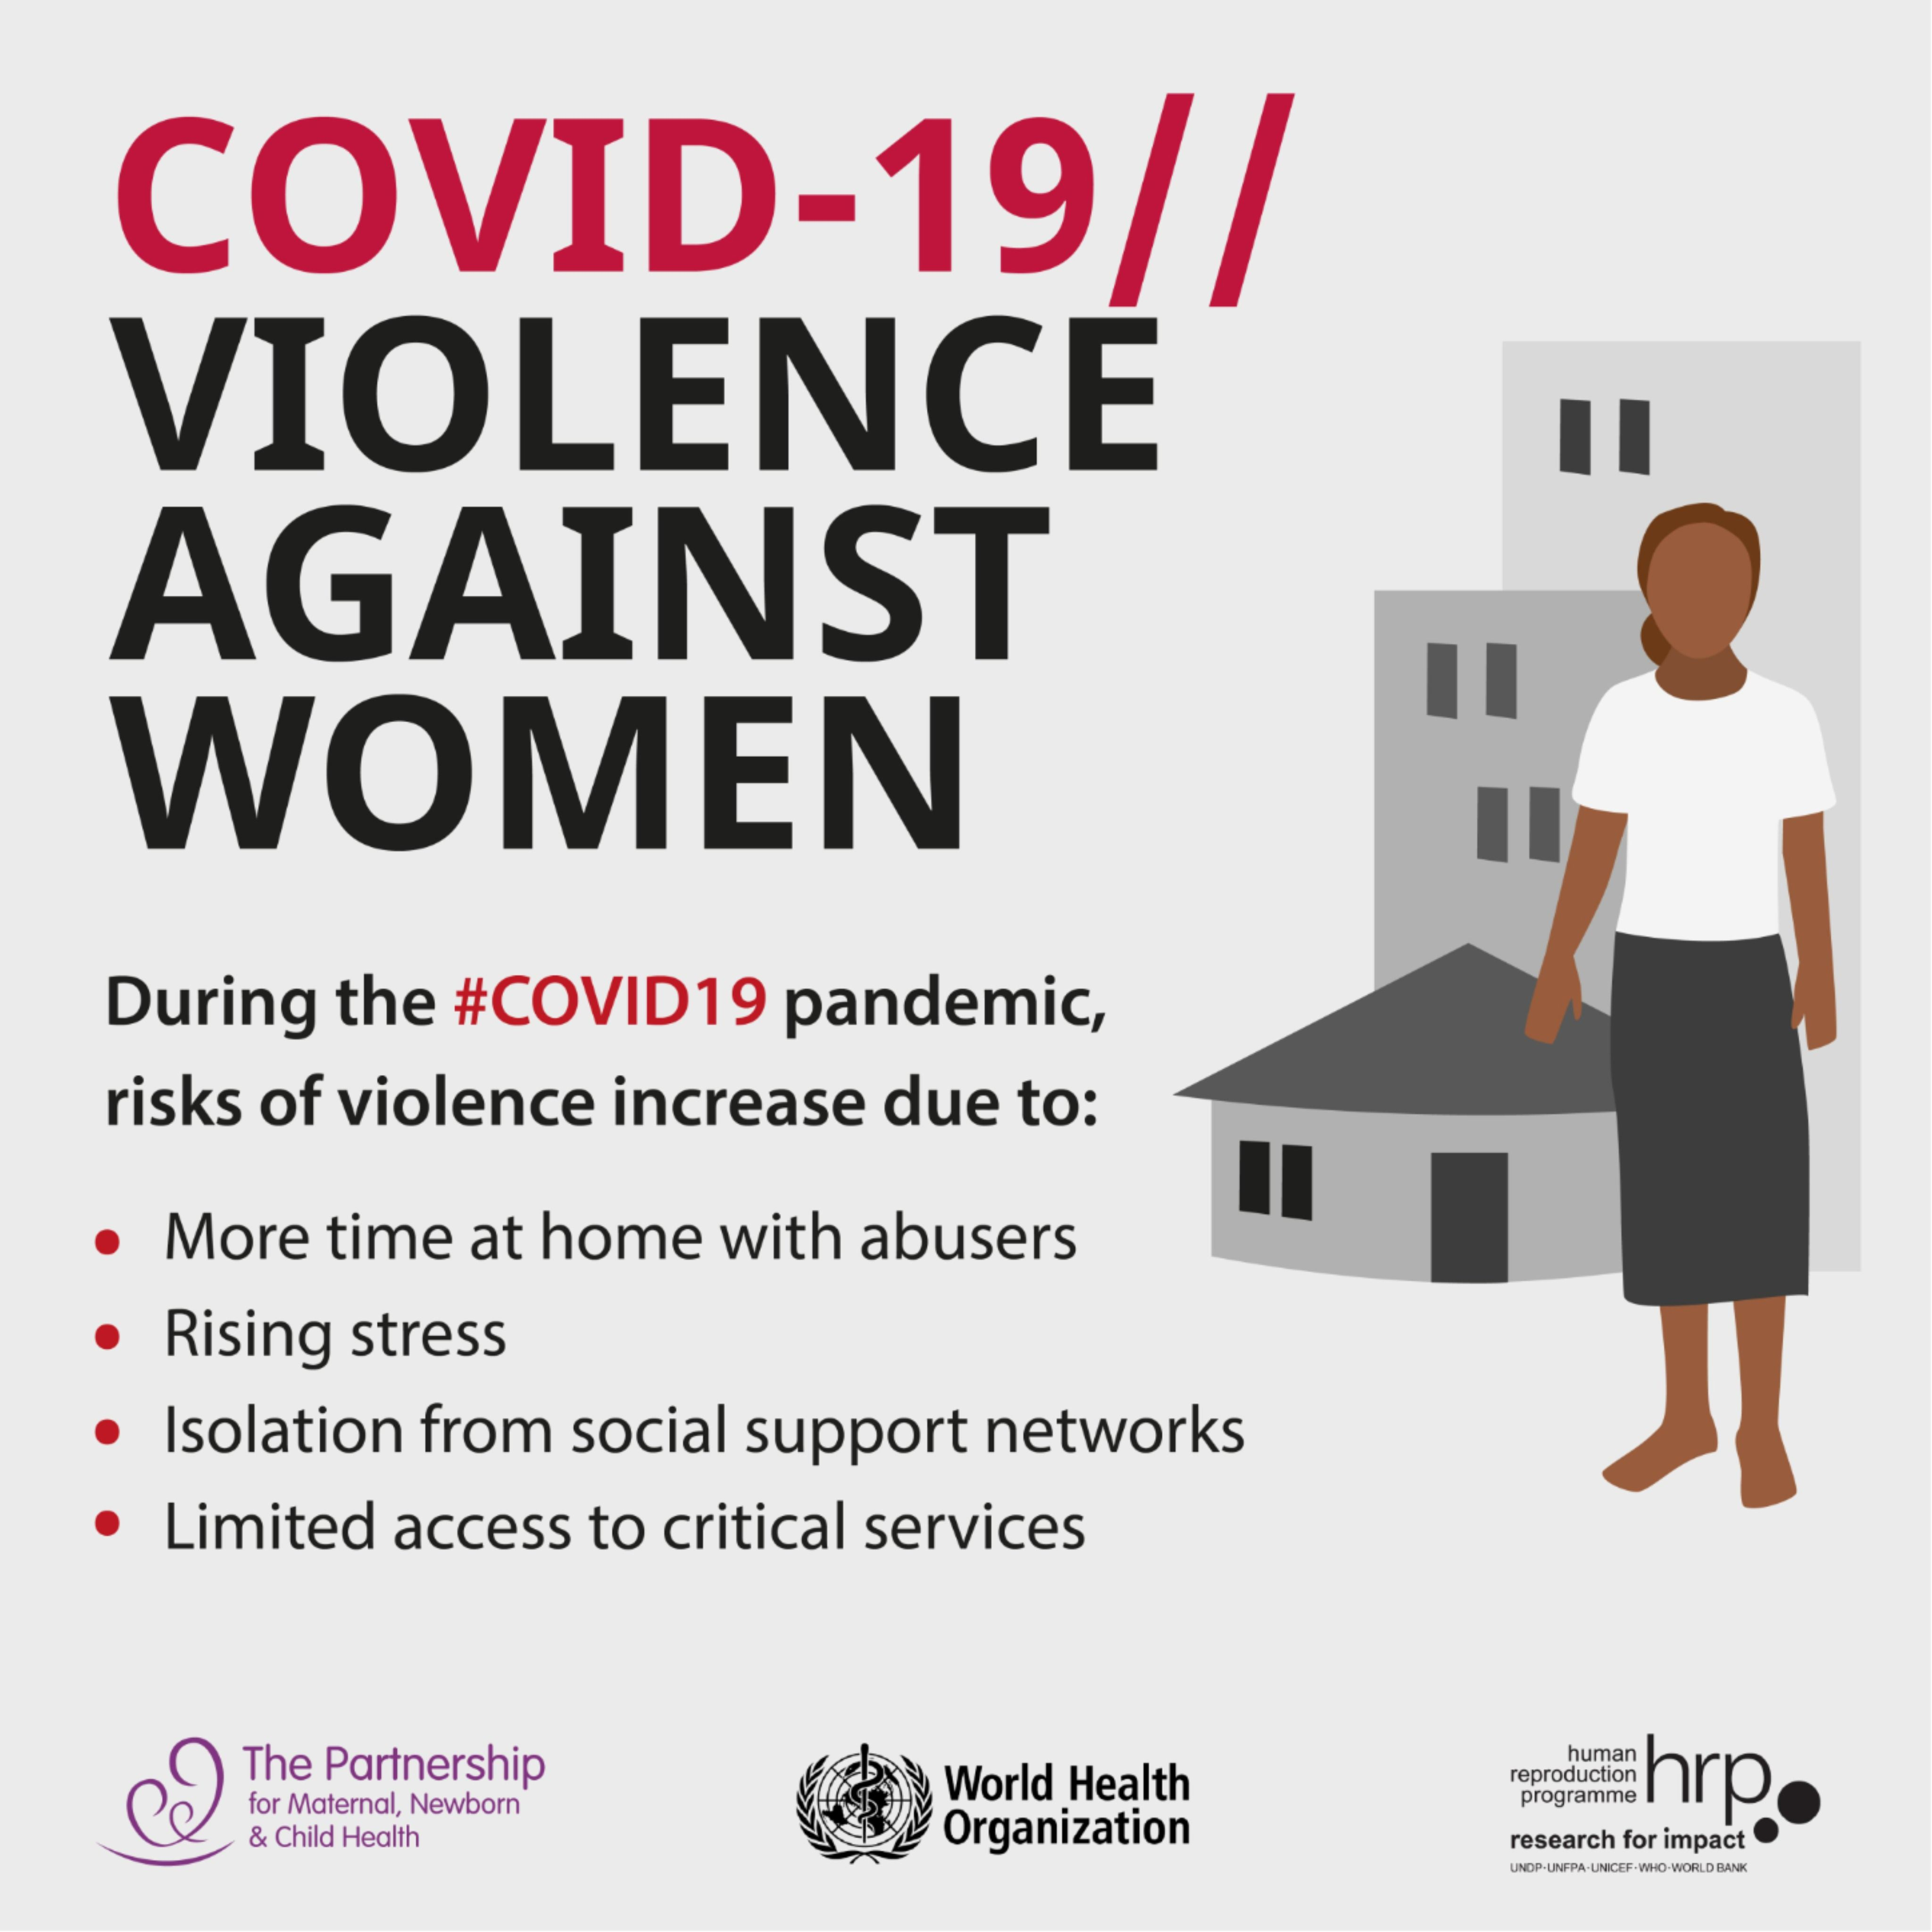 During the COVID19 pandemic, risks of violence increase